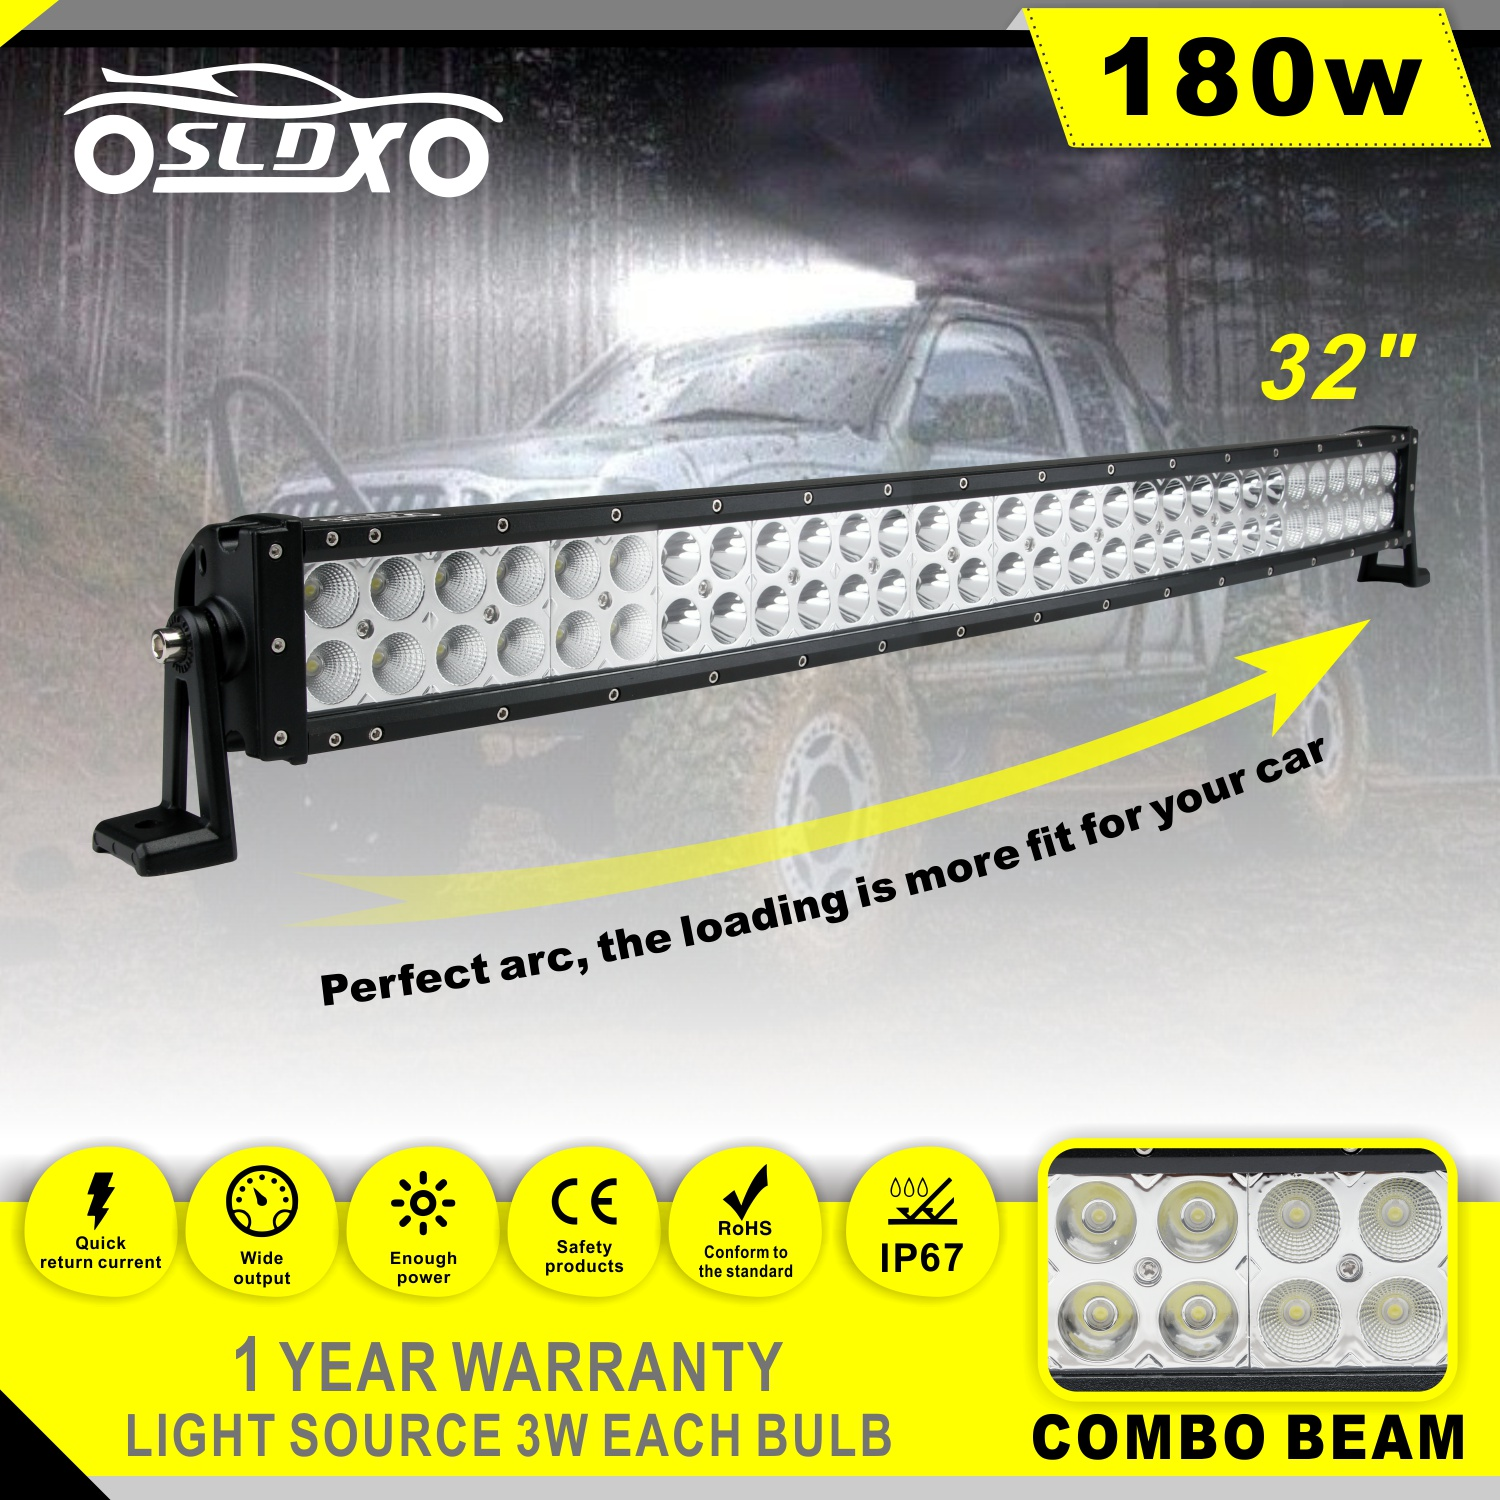 Sldx 32180w Curved Led Light Bar 2pcs18w Free Two Wiring Arc Harness 2pcs 18w Spot Ip67